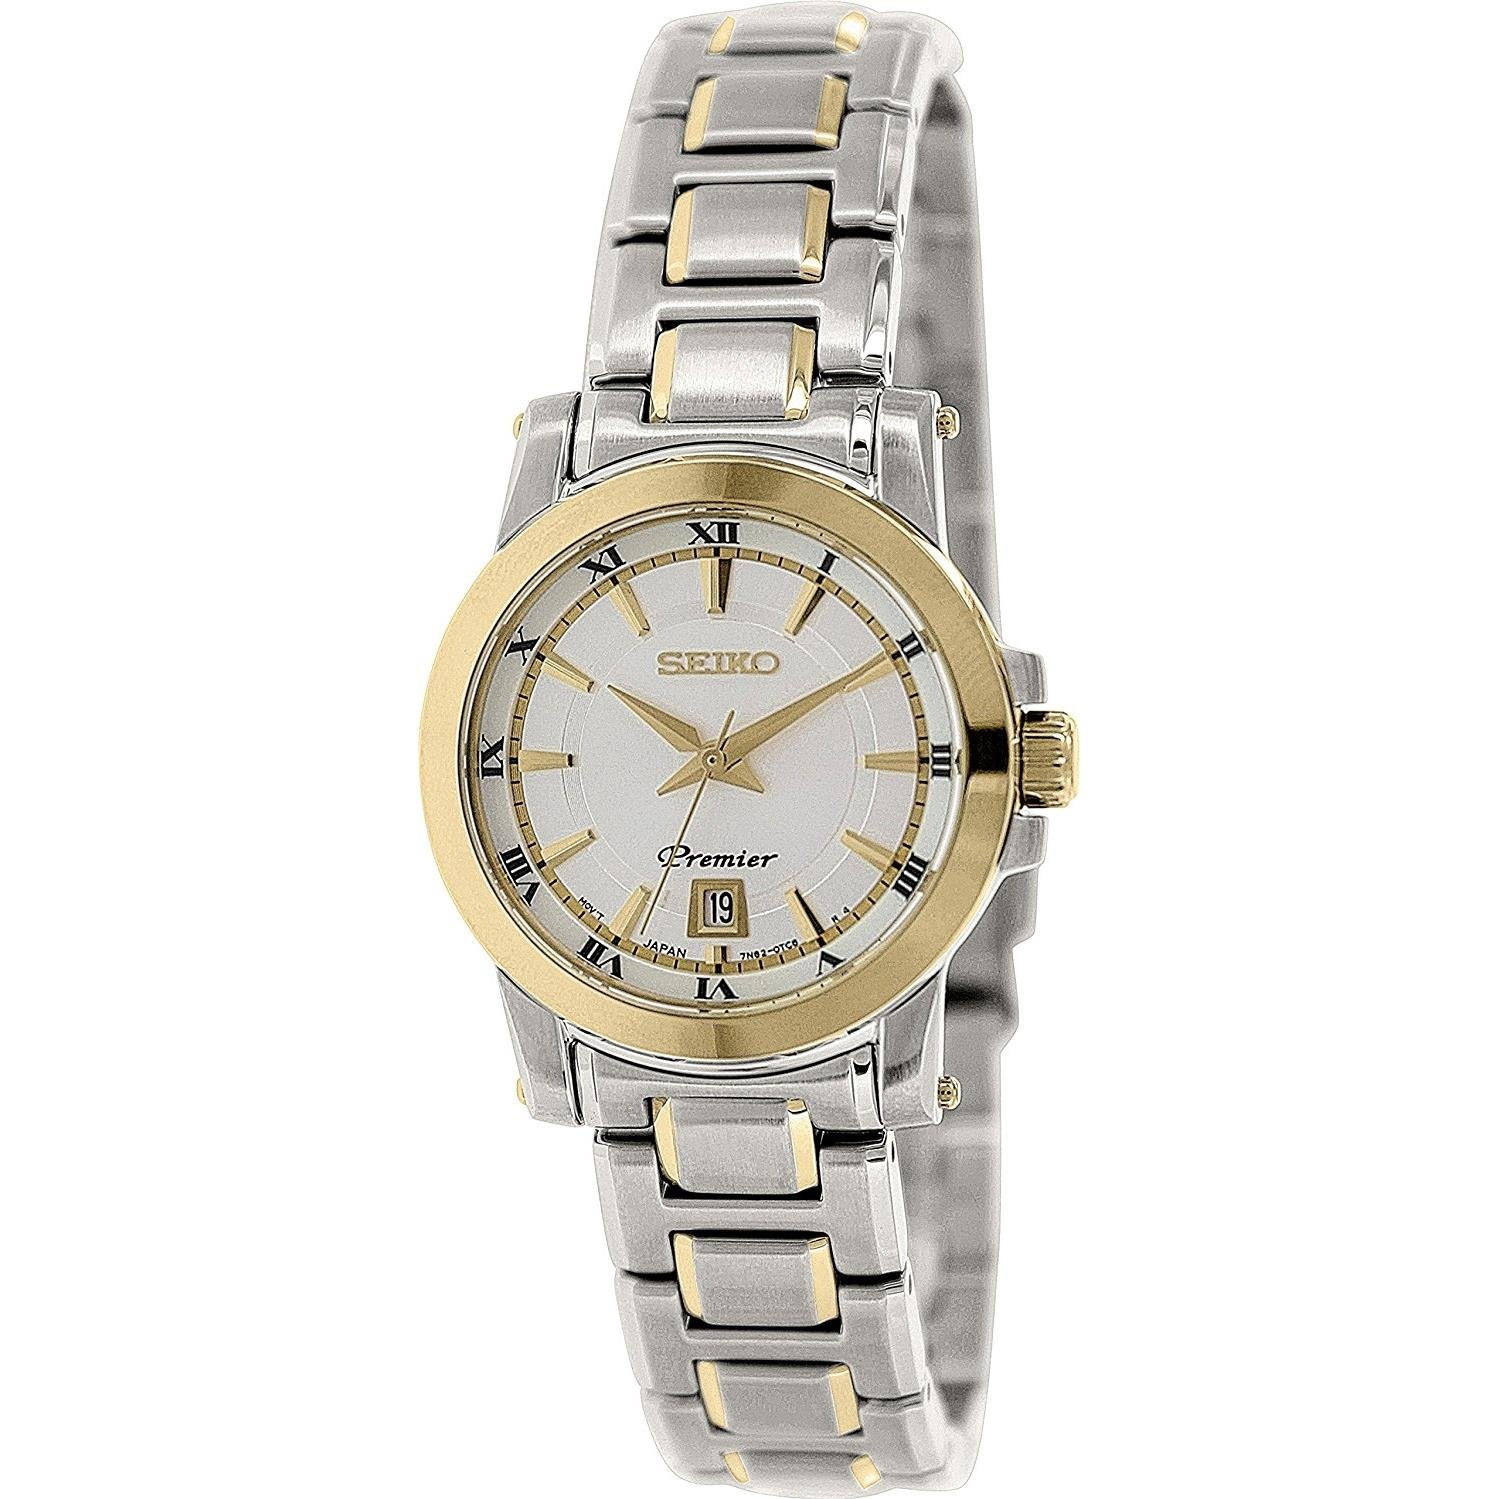 Seiko SXDF44 Premier Gold Bezel Stainless Steel Ladies